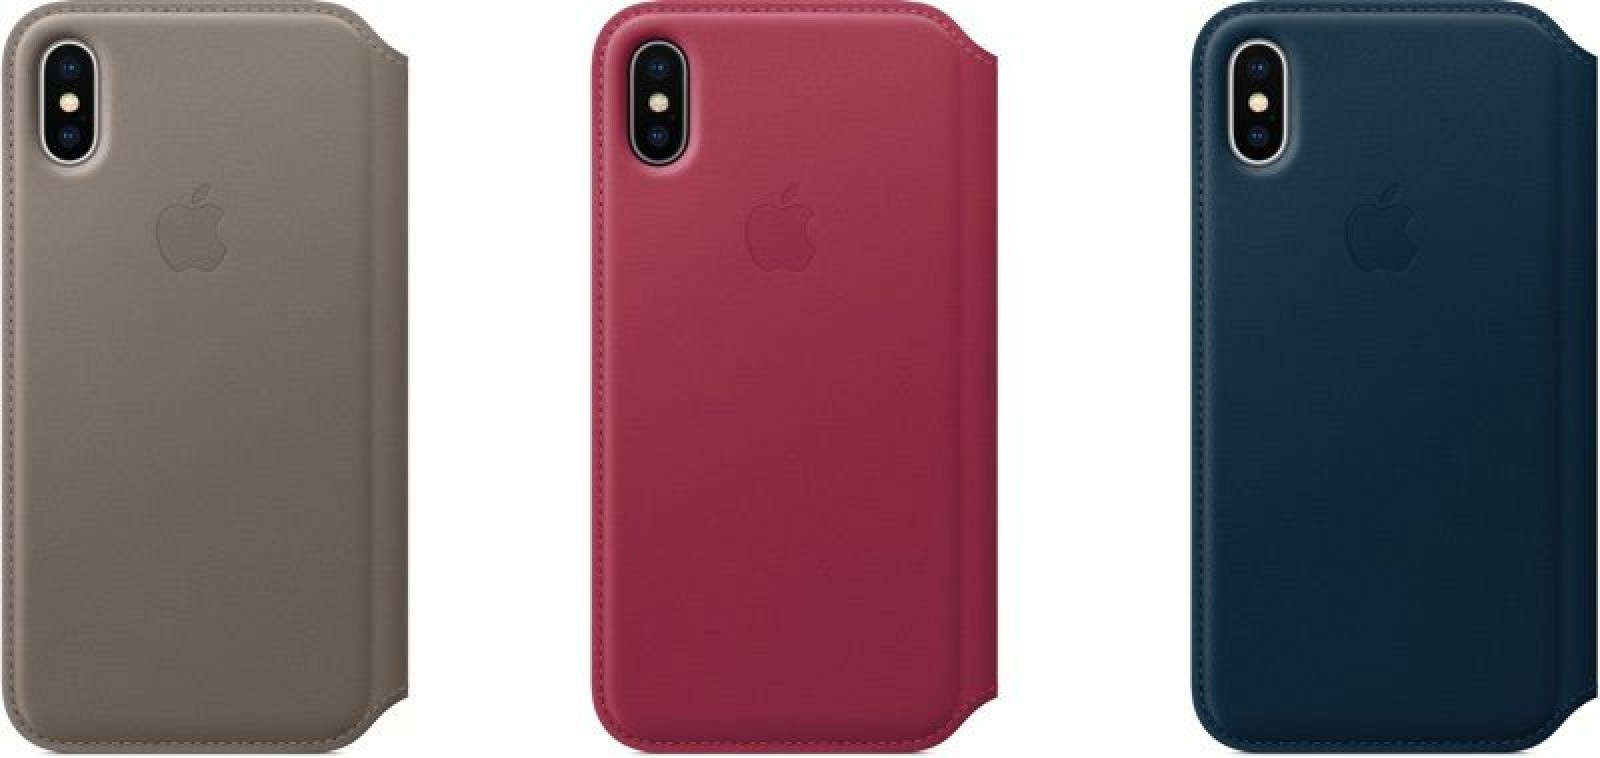 iPhone 8, X Get Official Accessories